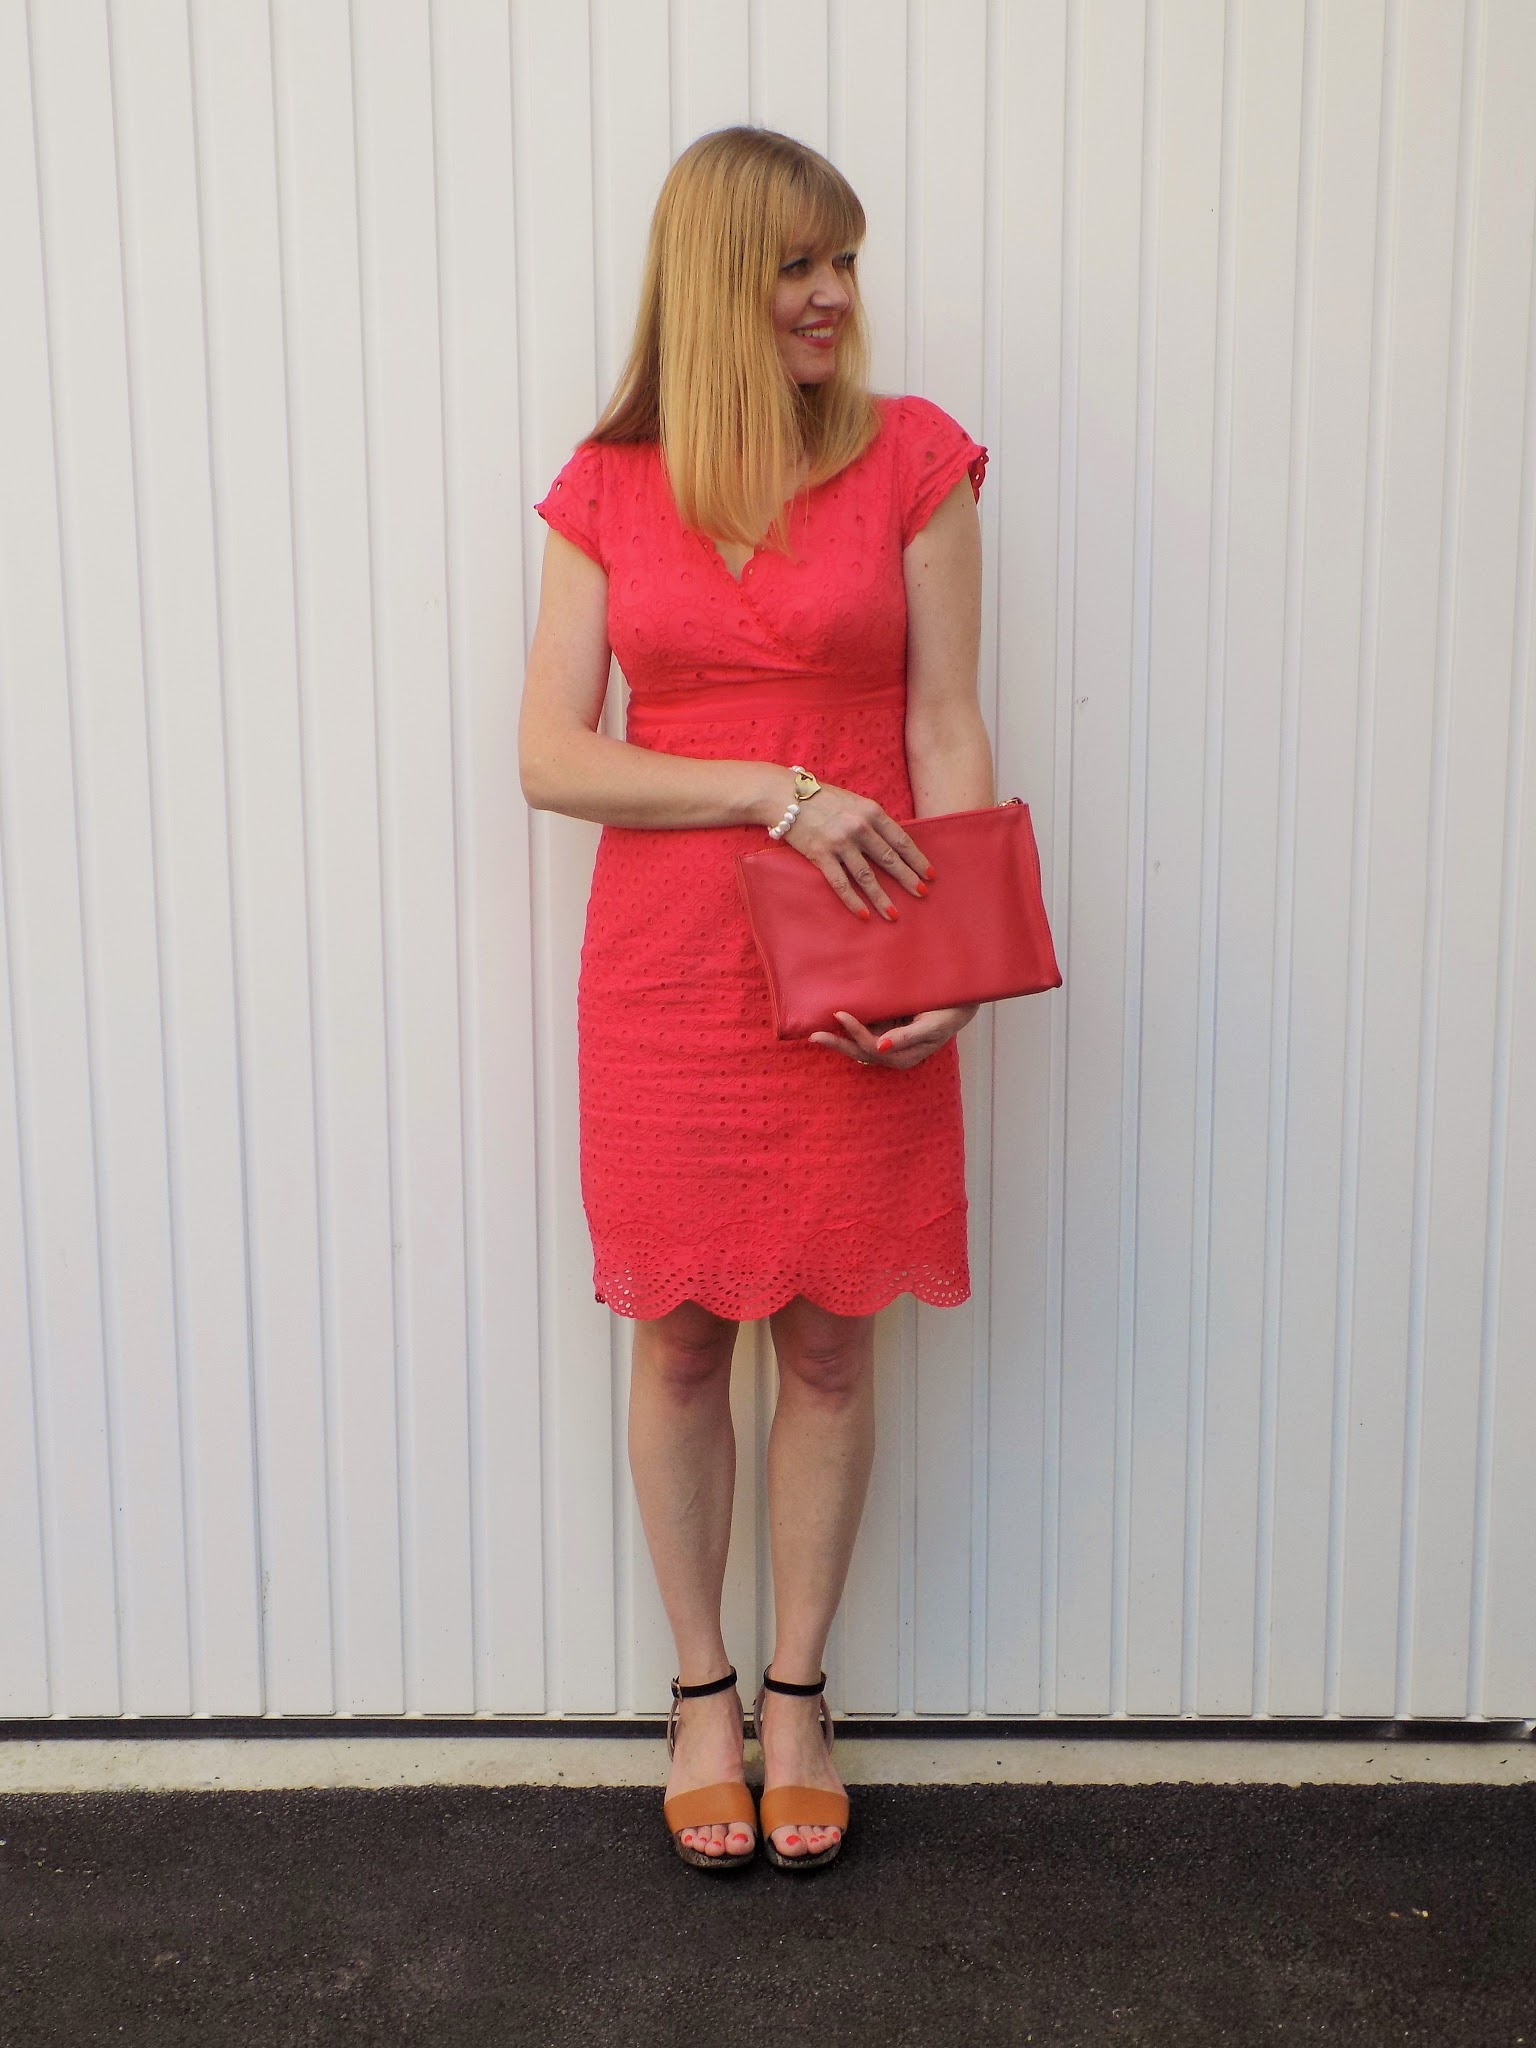 Boden red broderie Anglaise dress, snake print wedge sandals and red clutch